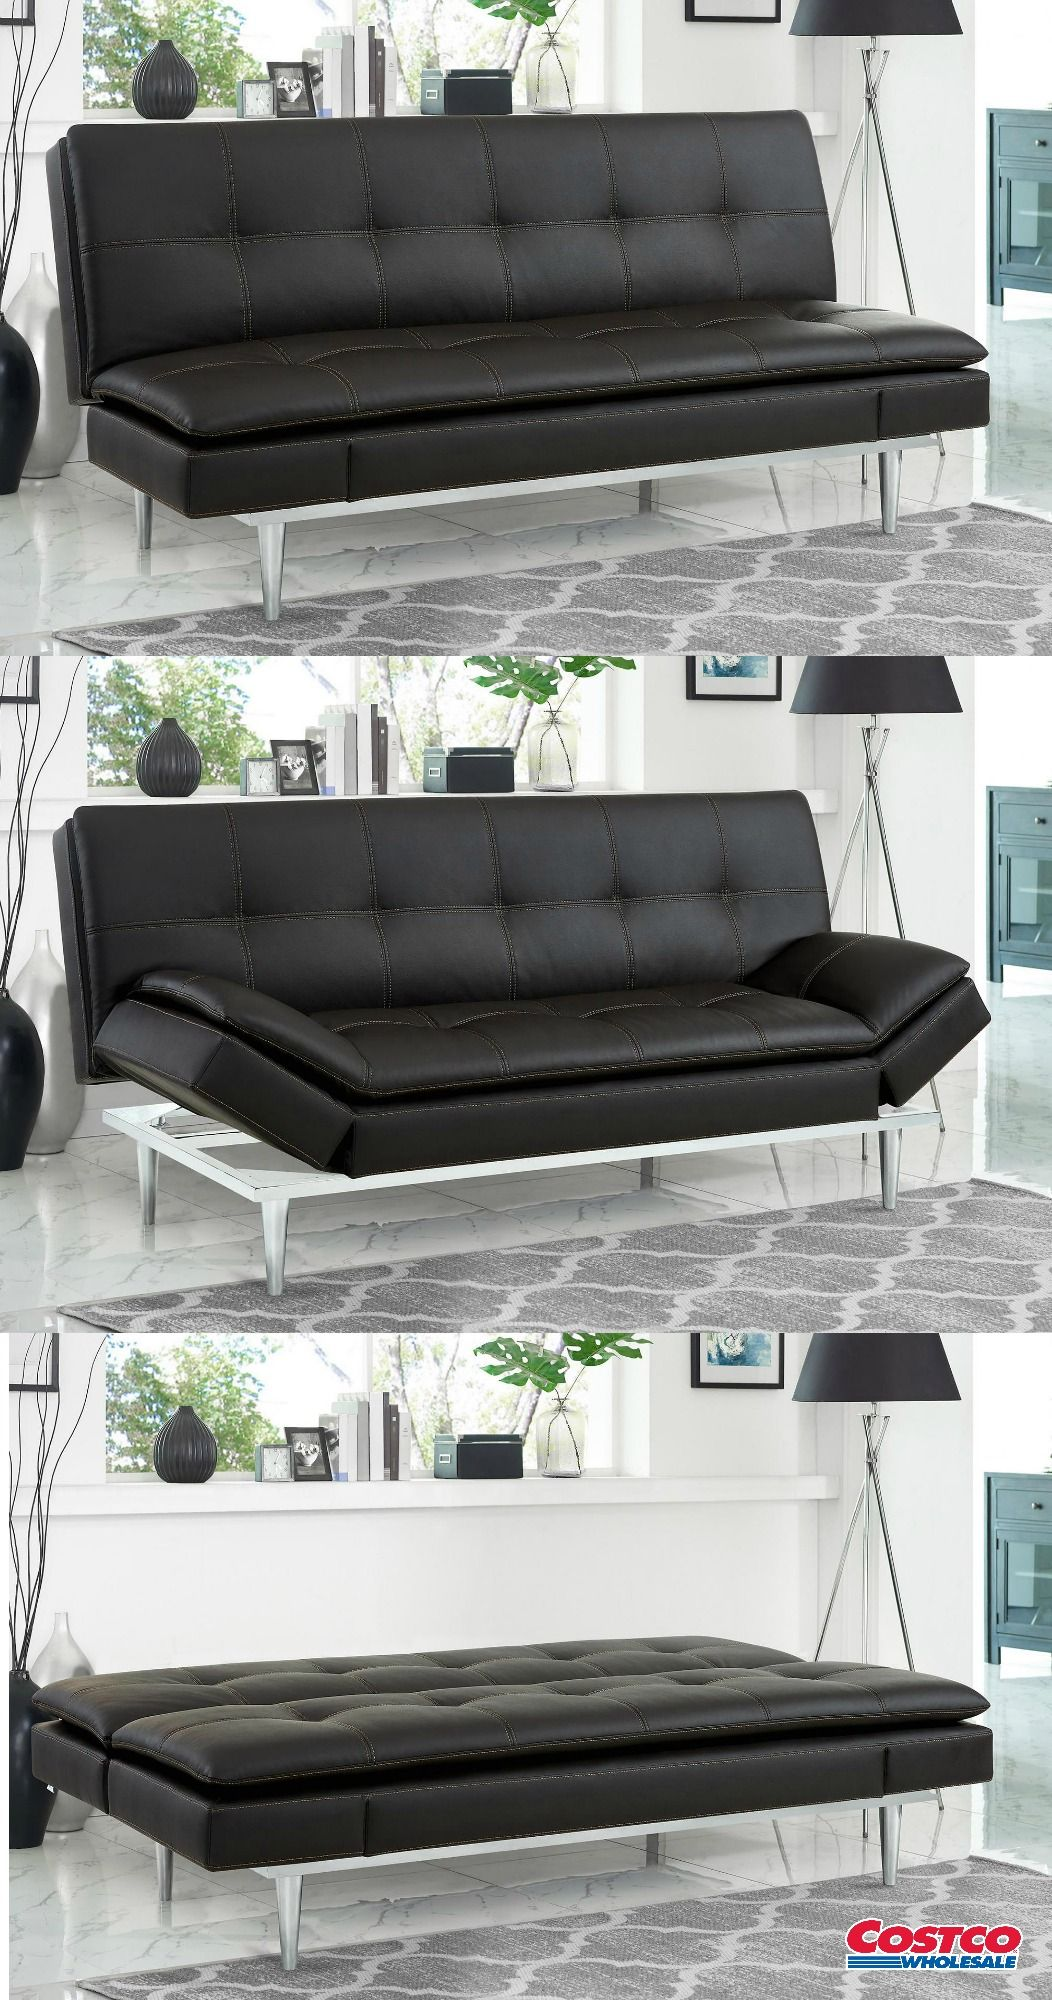 Russel Beautyrest Bonded Leather Euro Lounger Costco